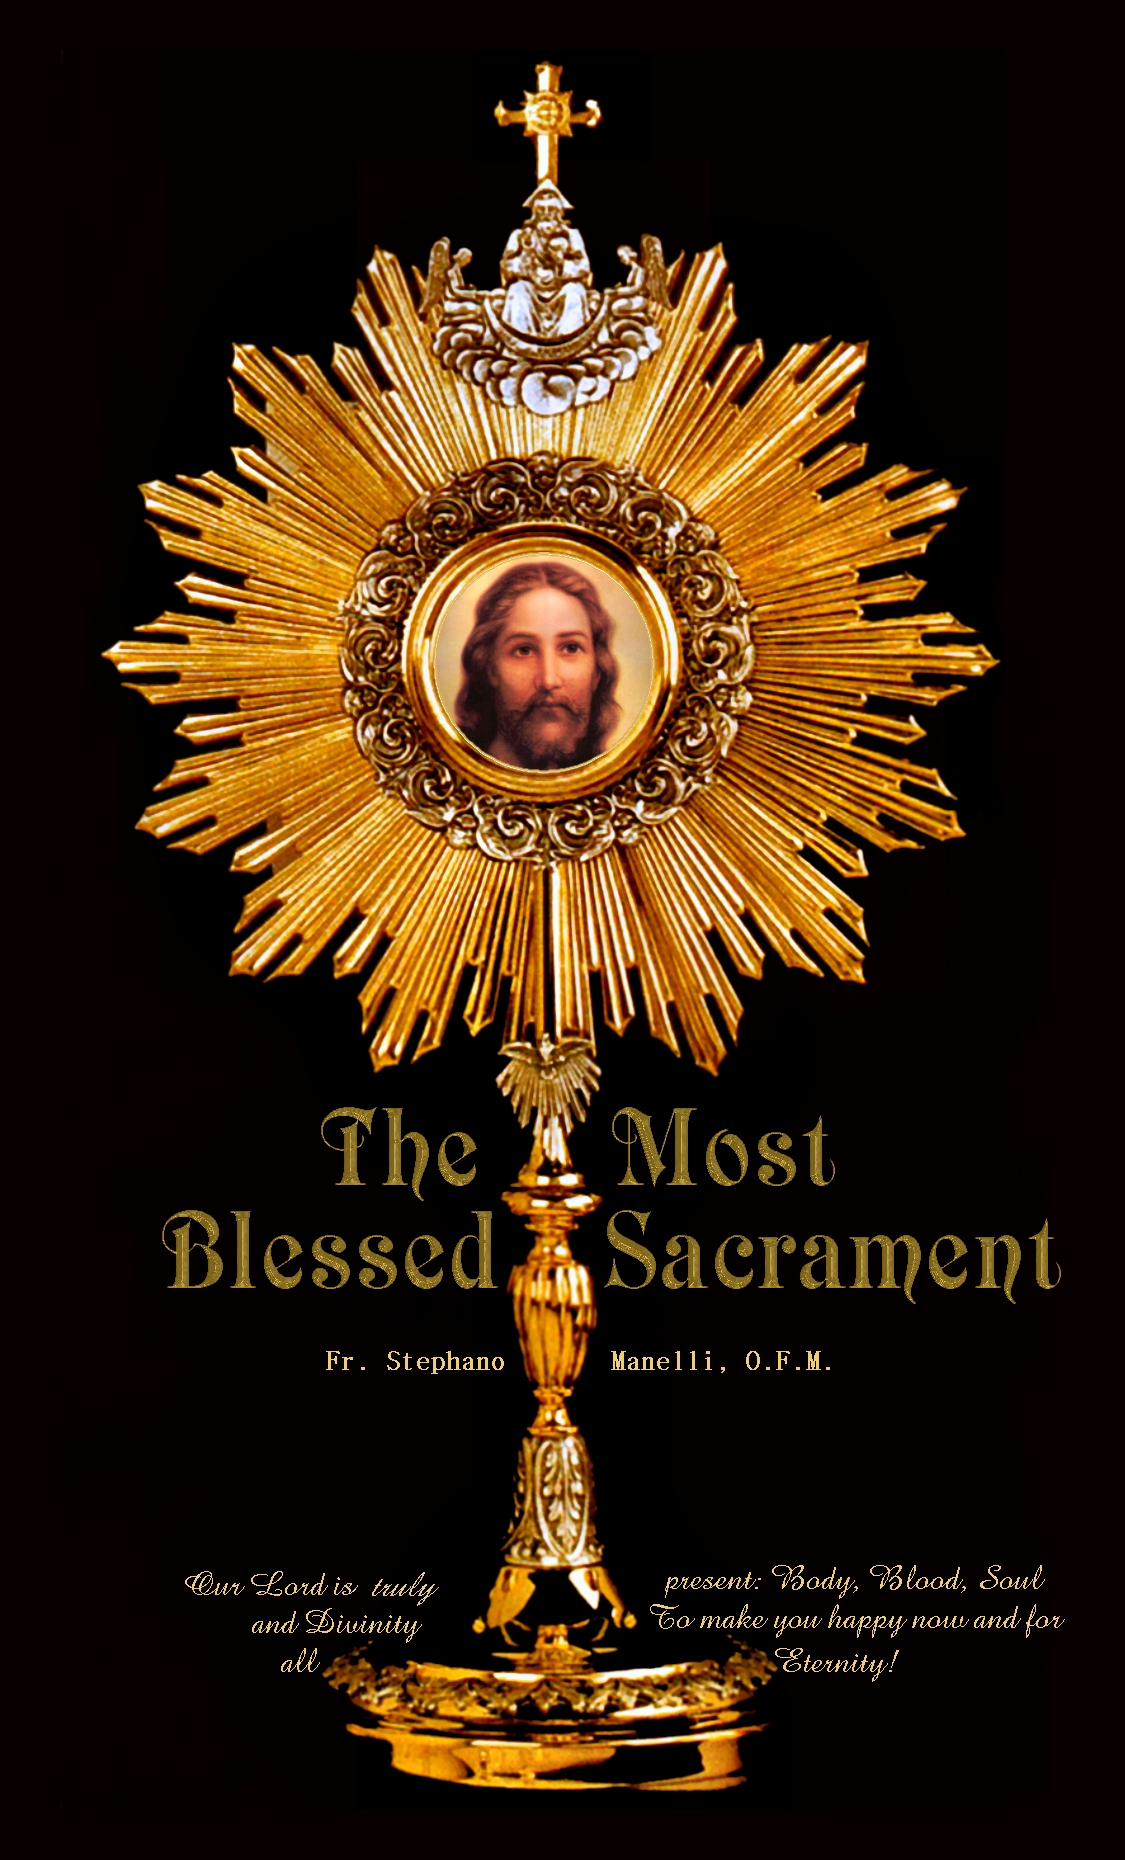 Opinions on Blessed Sacrament